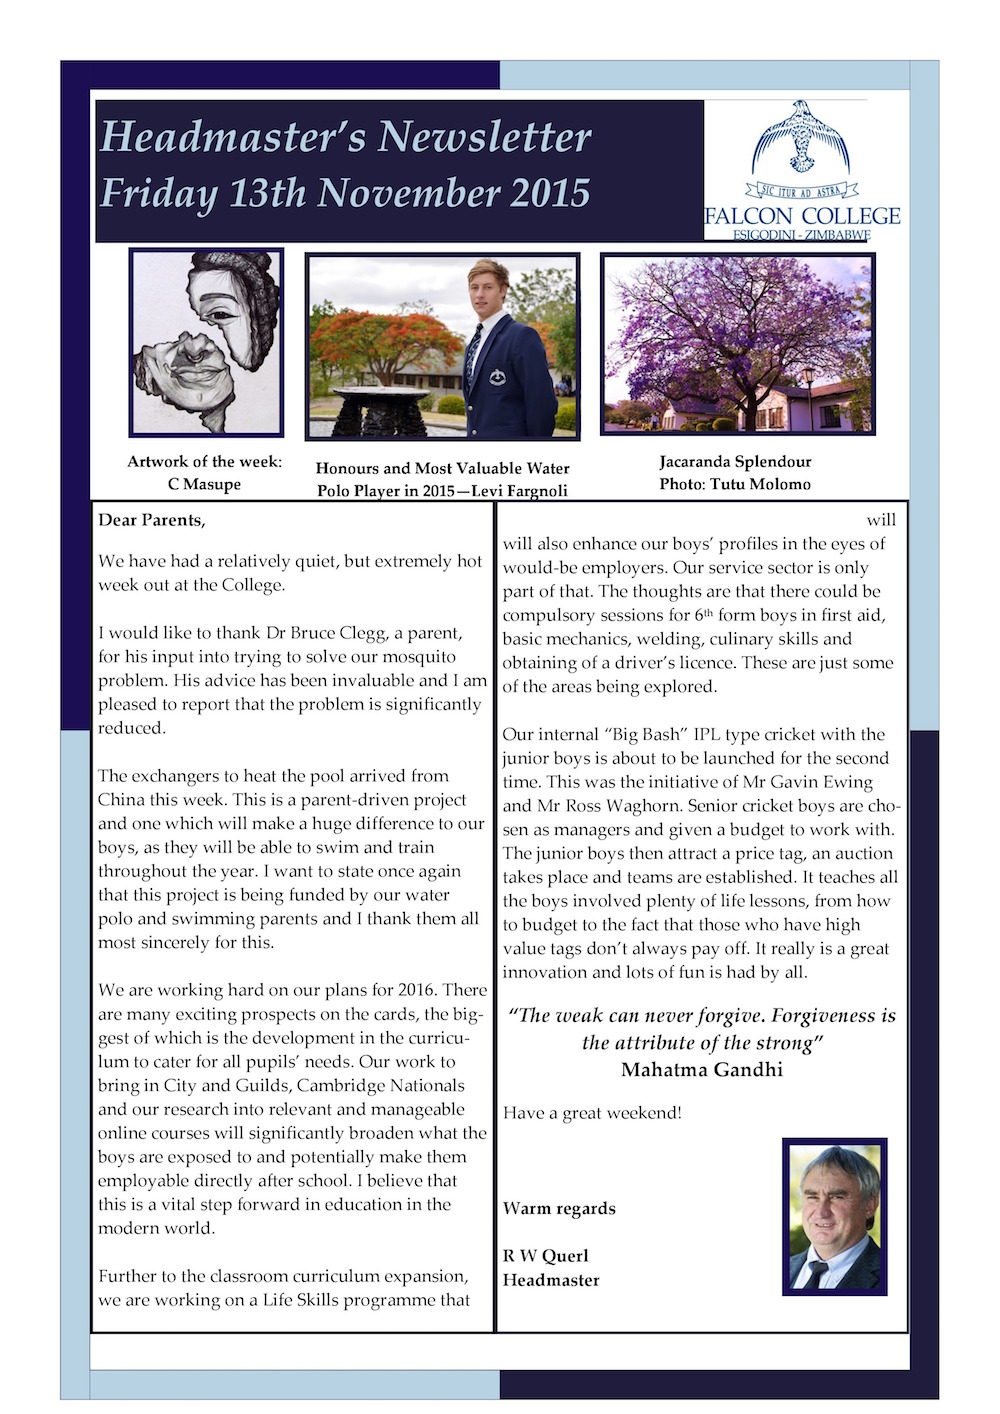 Headmaster's Newsletter Friday 13th November 2015 edited-page-0